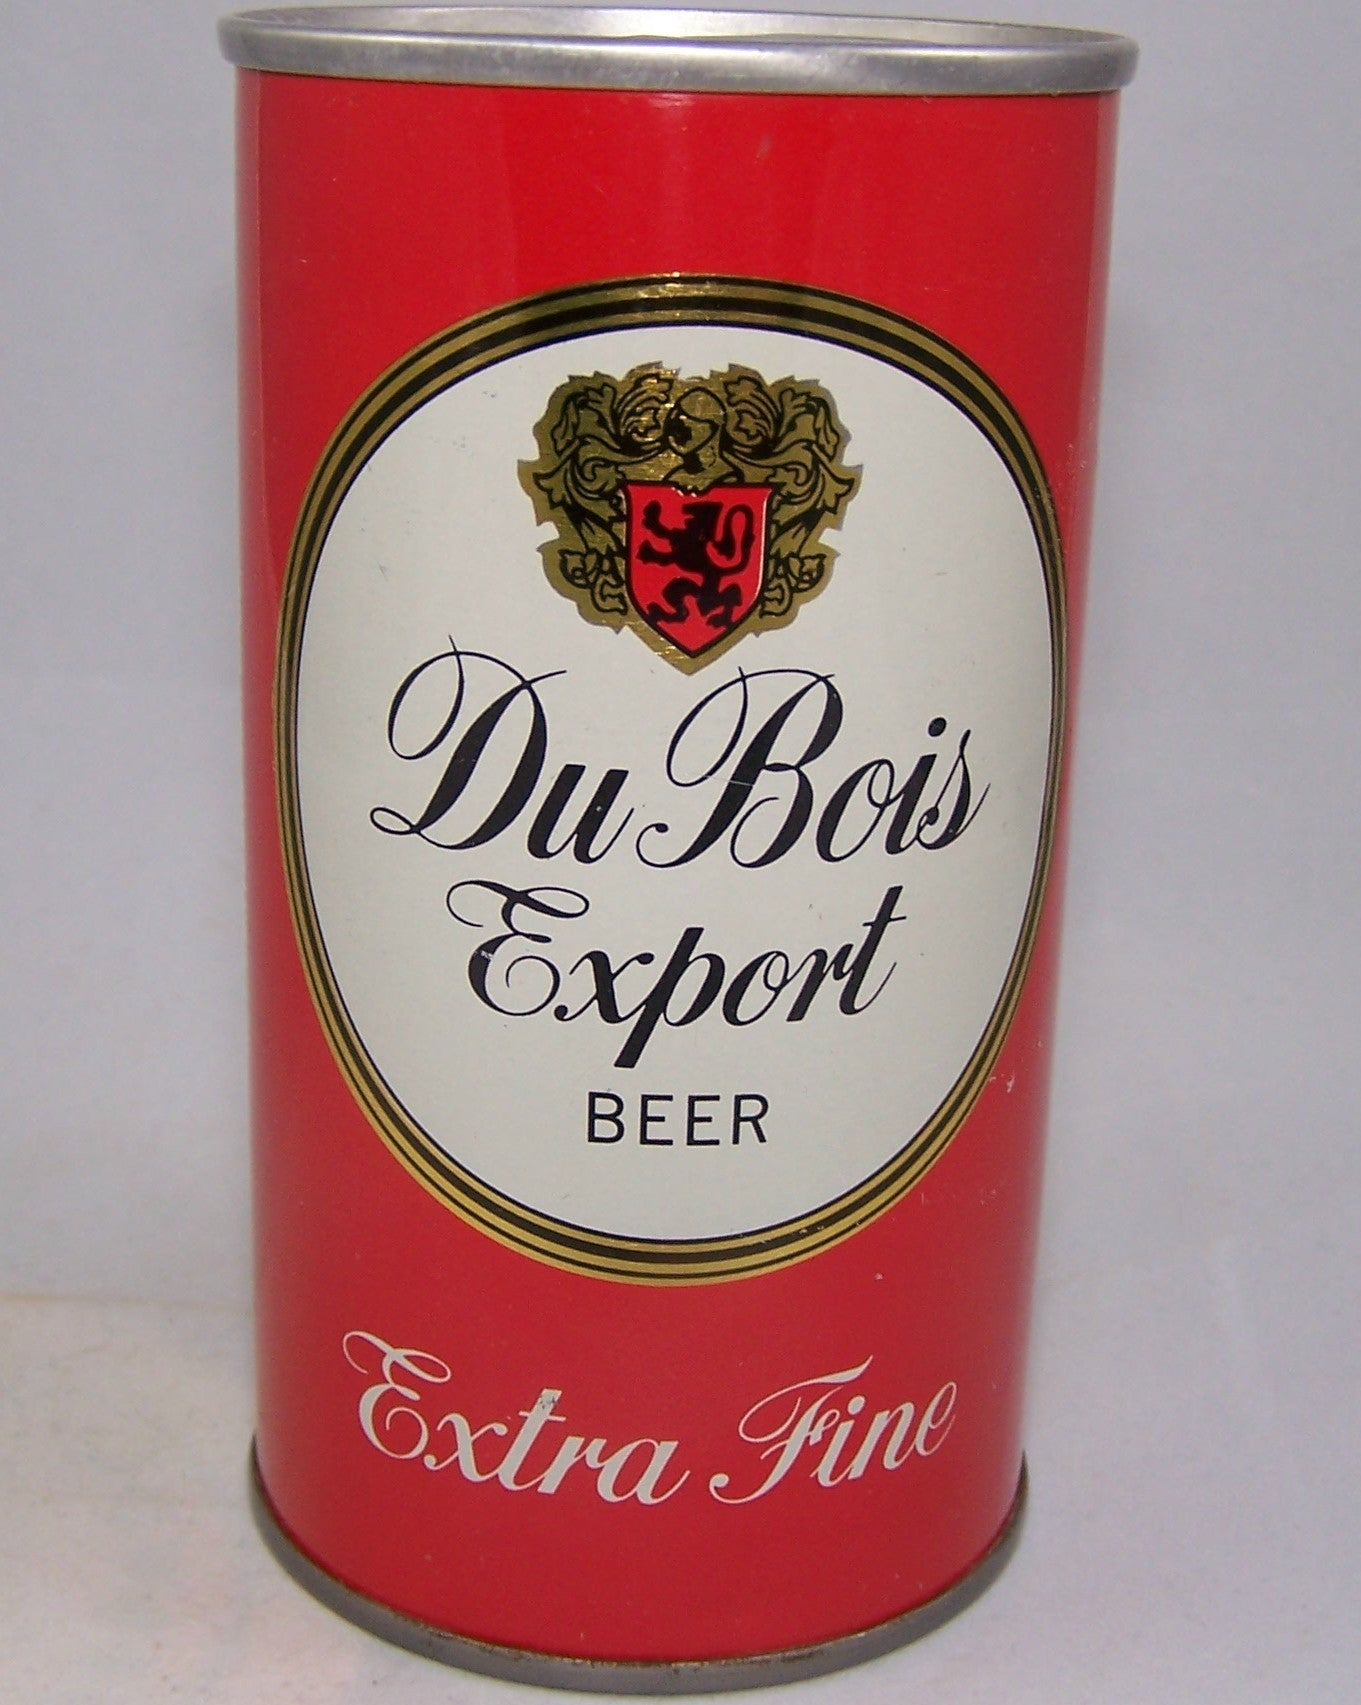 Du Bois Export Beer (Enamel) USBC II like 60-03 N.L Grade 1/1+ Sold on 10/25/15